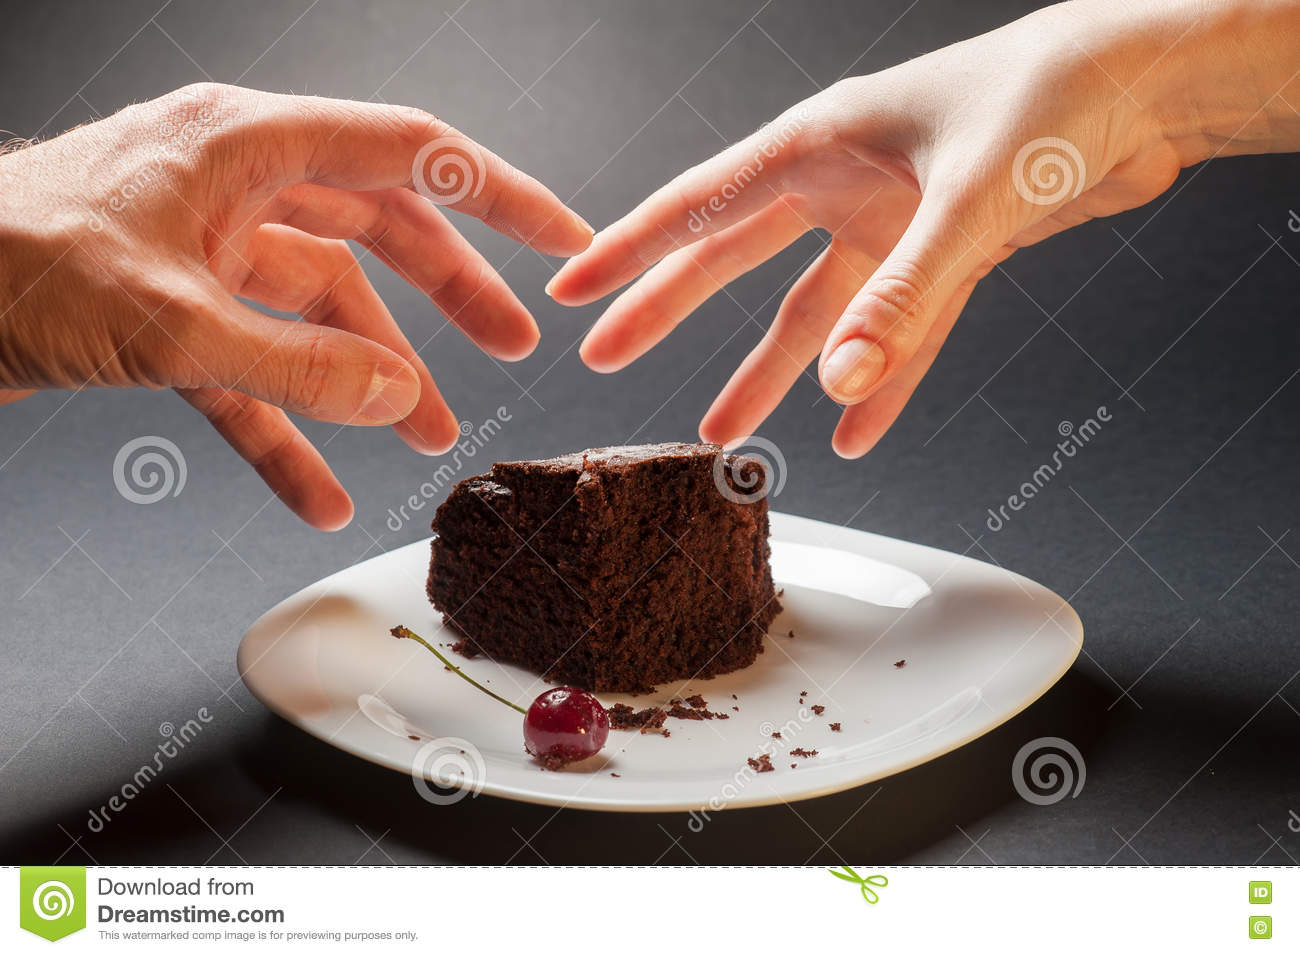 Concept with hands and chocolate cake